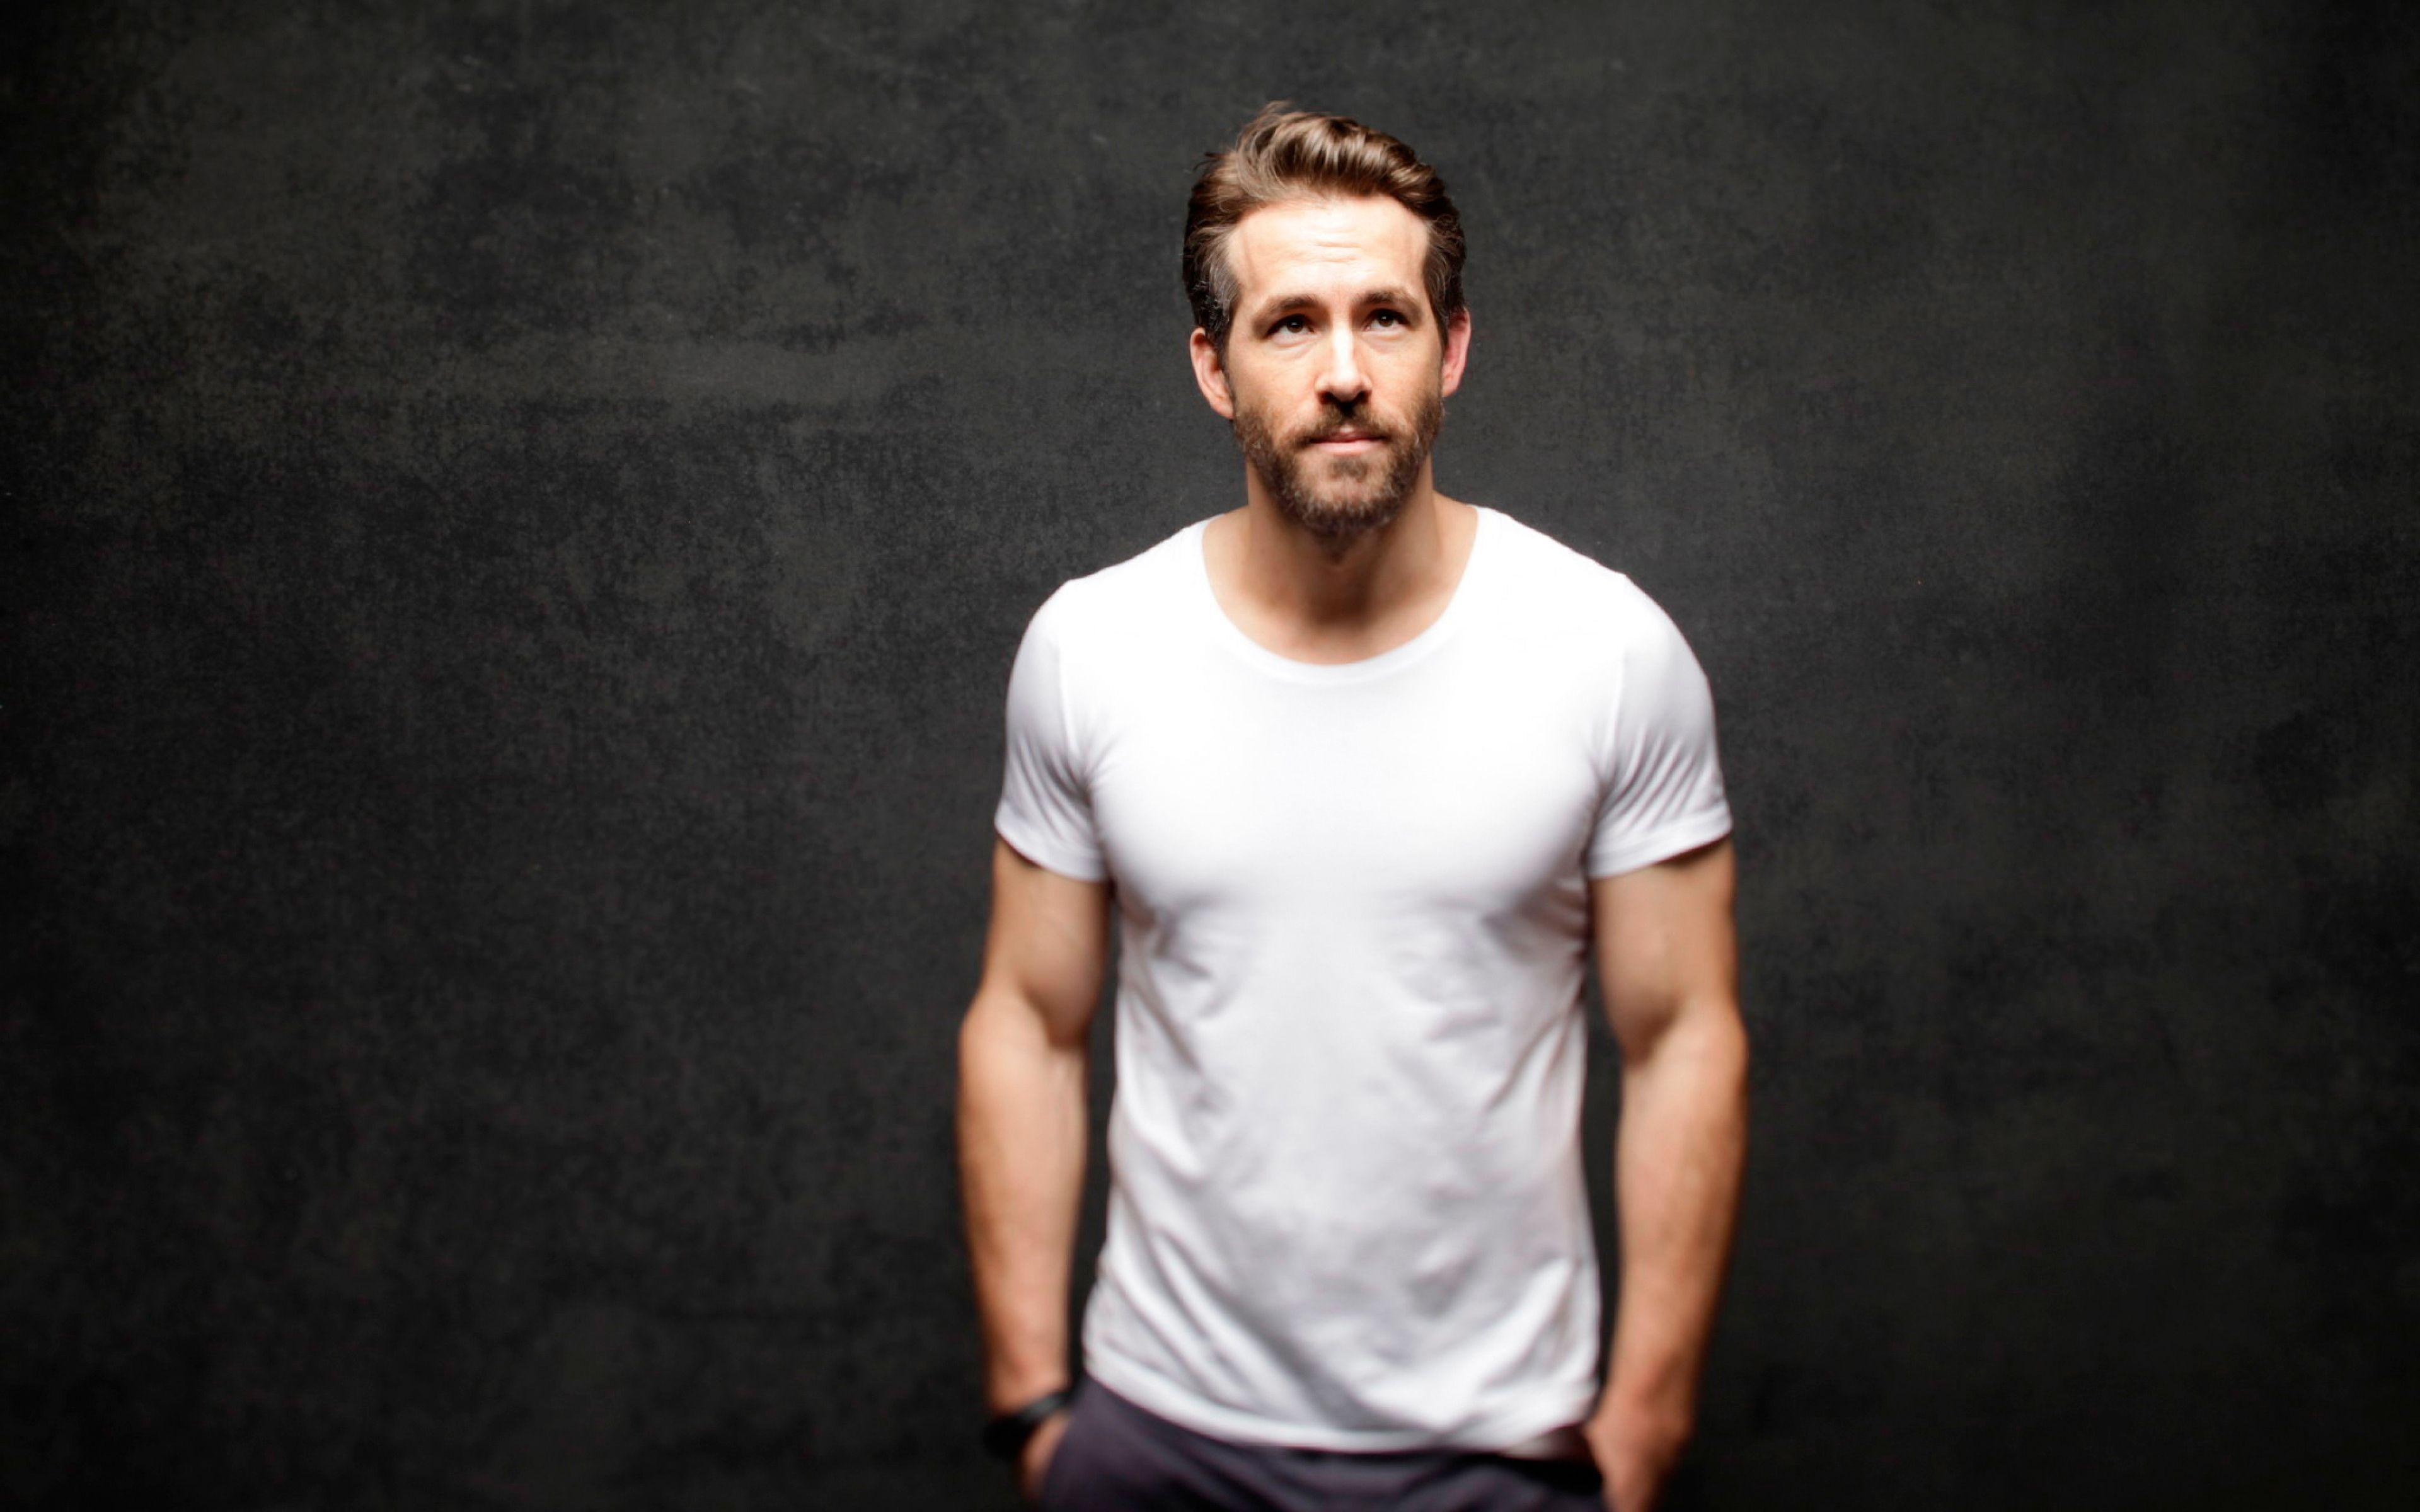 Ryan Reynolds Wallpapers High Resolution and Quality Download